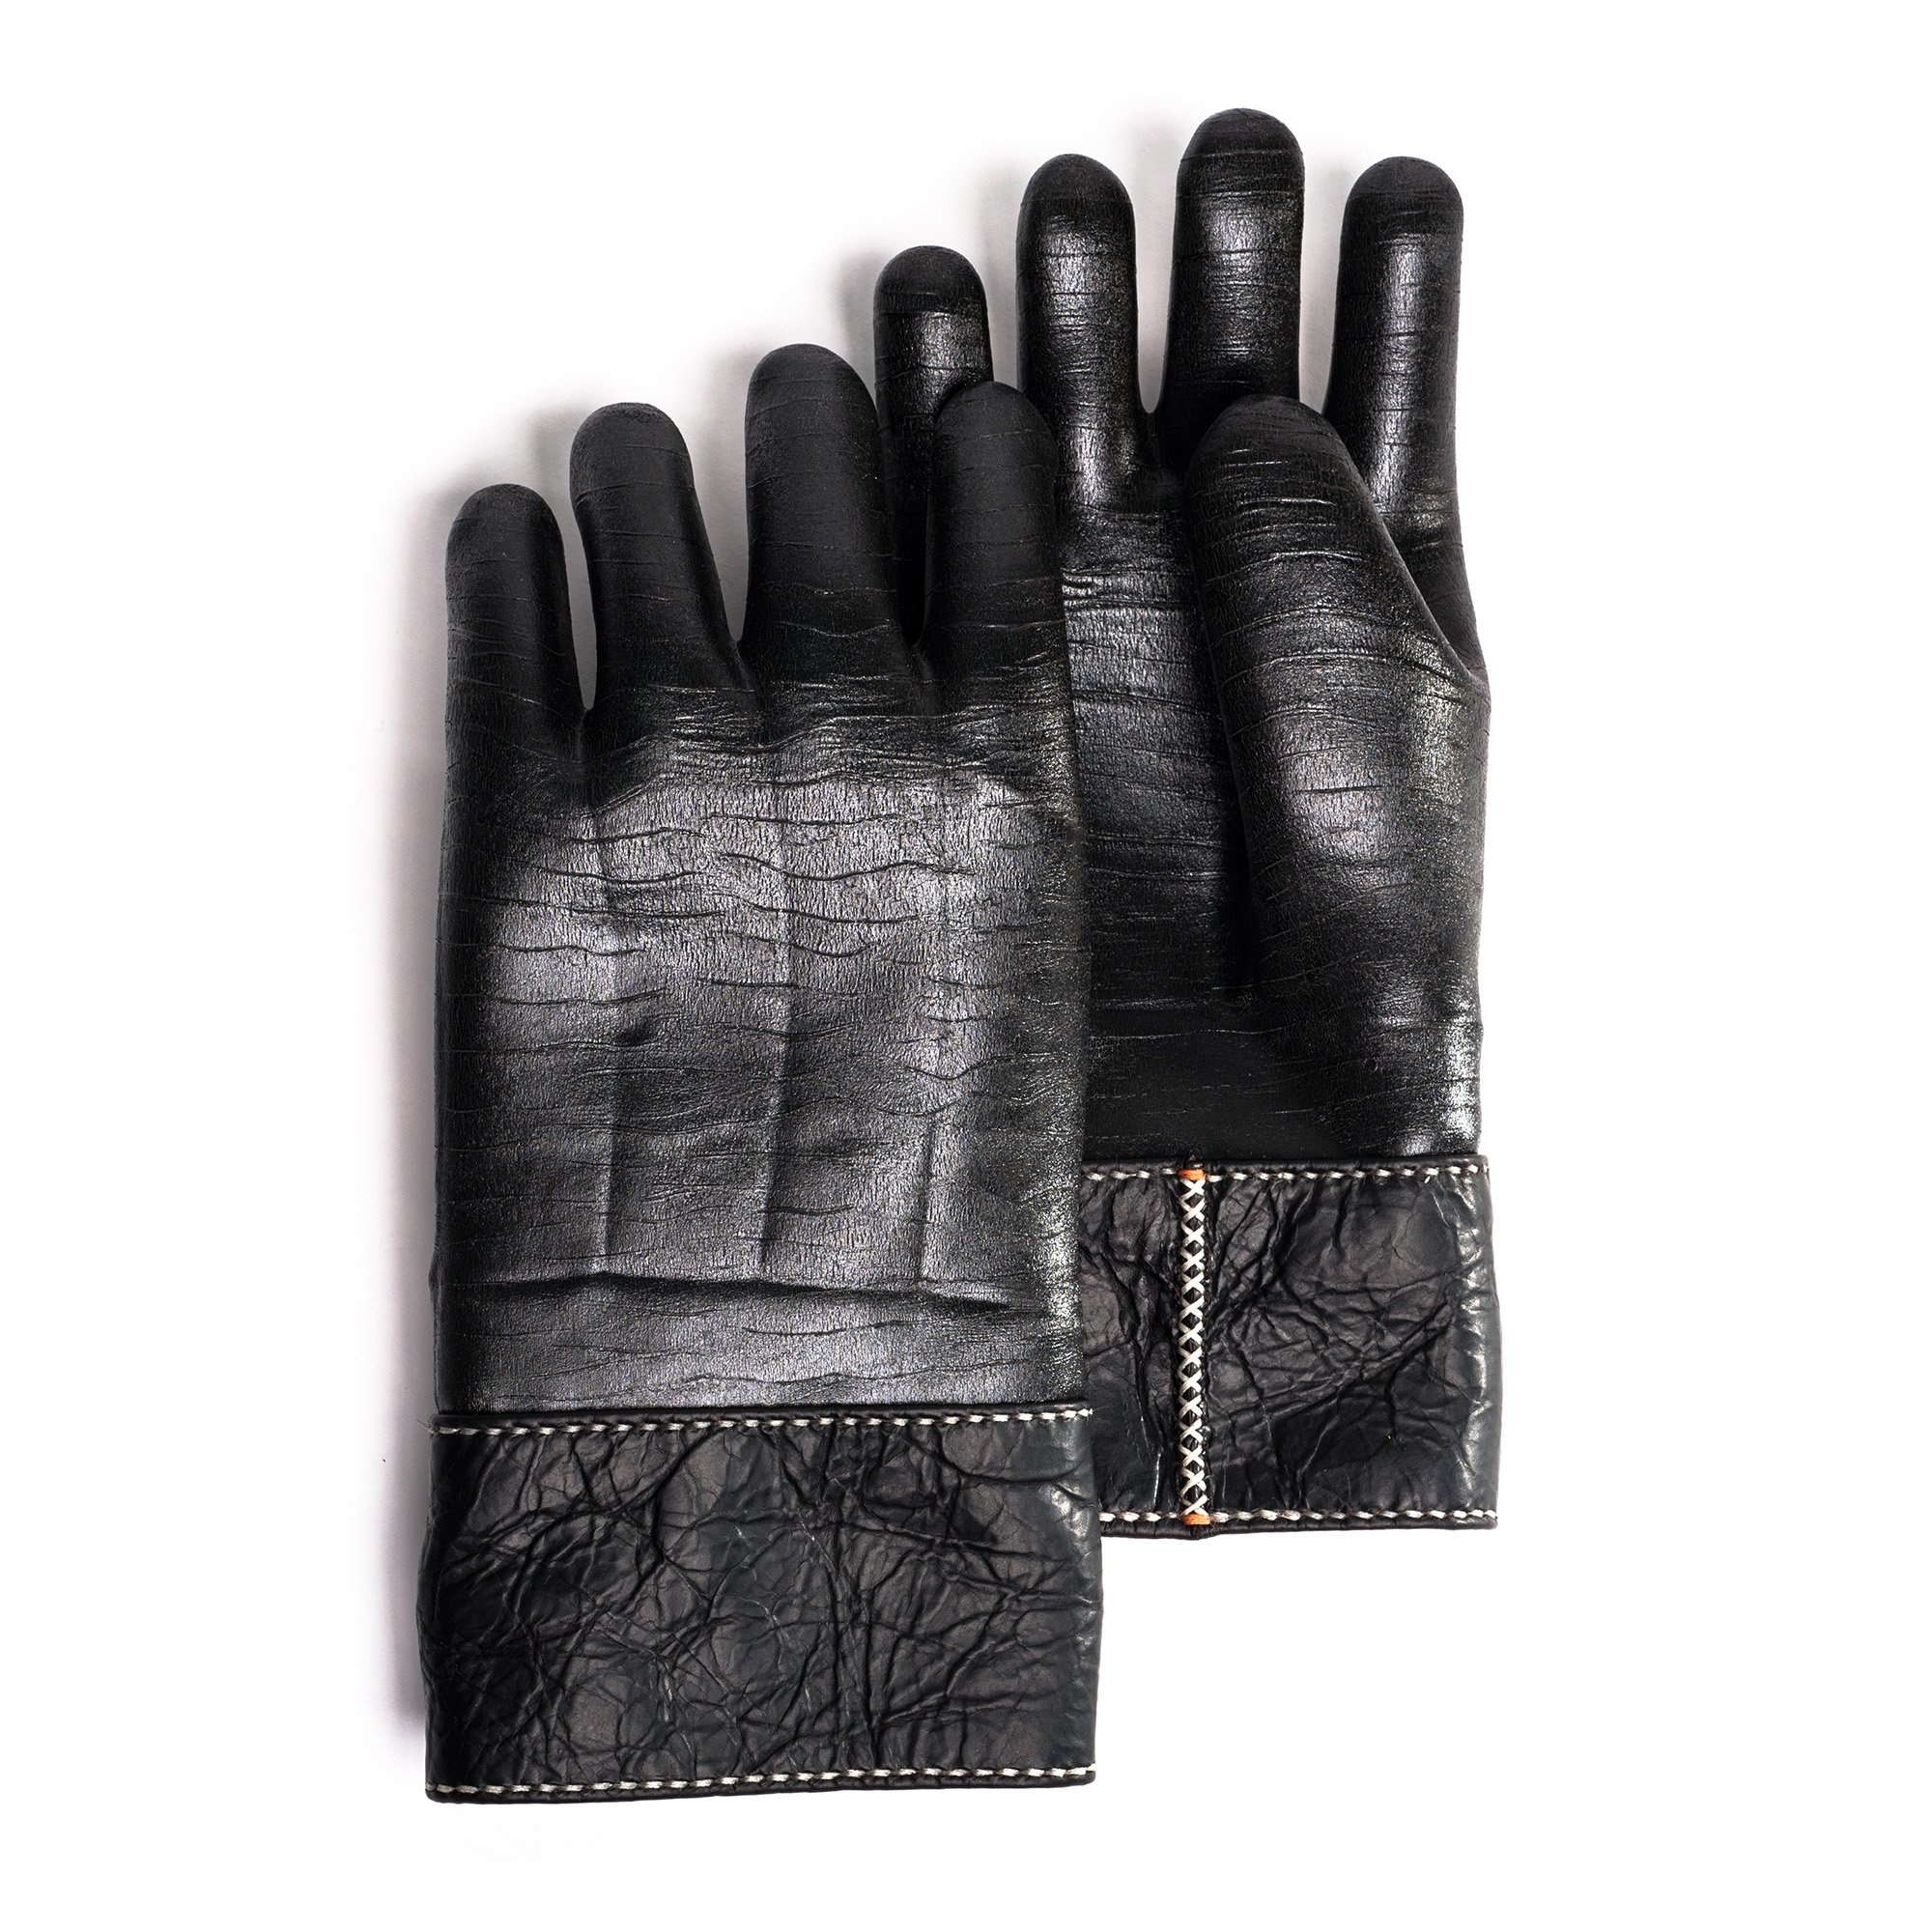 Billy Twang BOSS PIT GLOVE Leather grilling goves